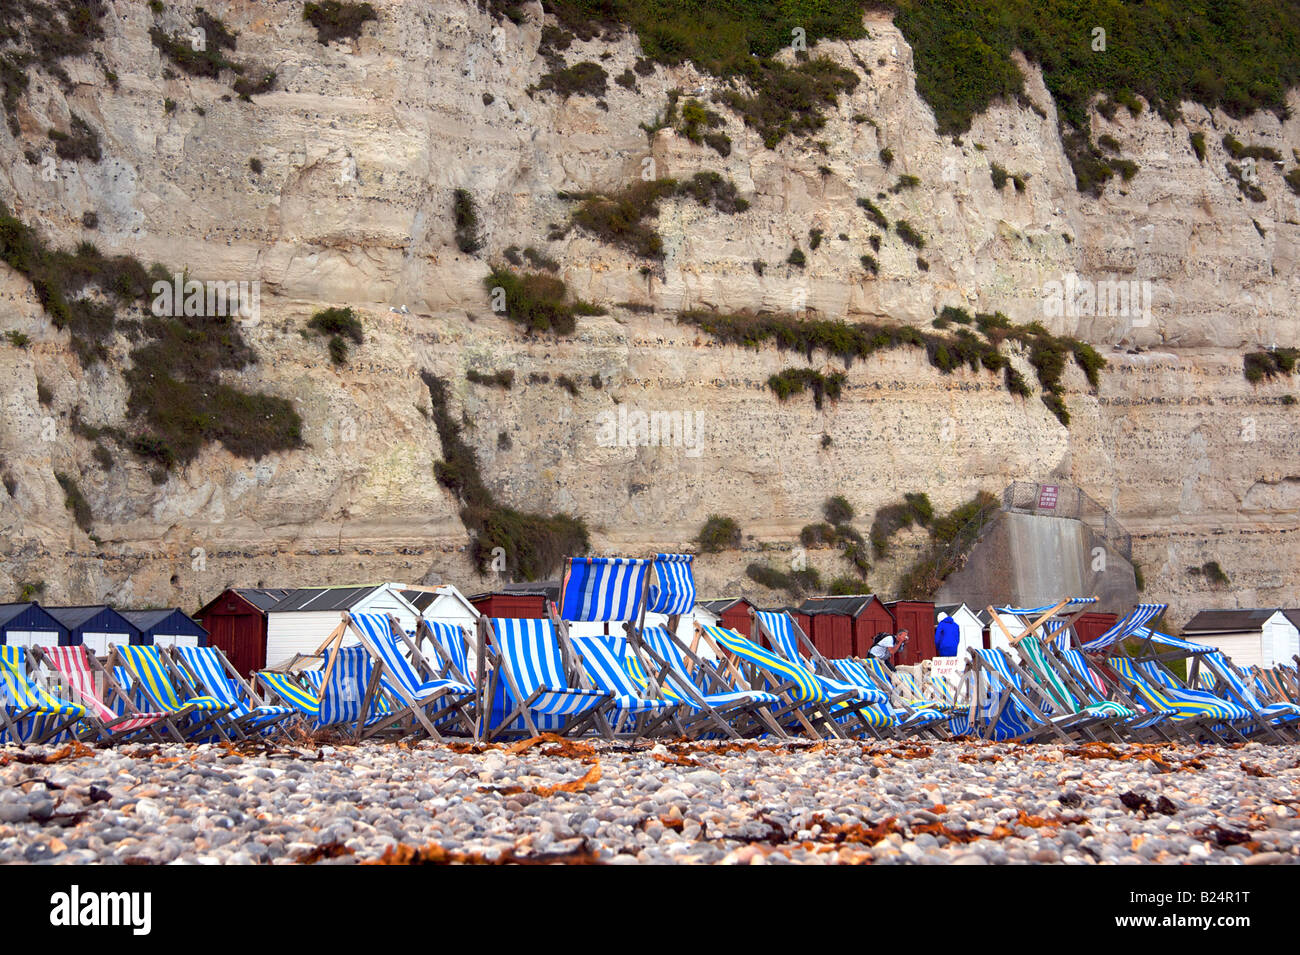 Deck Chairs on the Beach - Stock Image